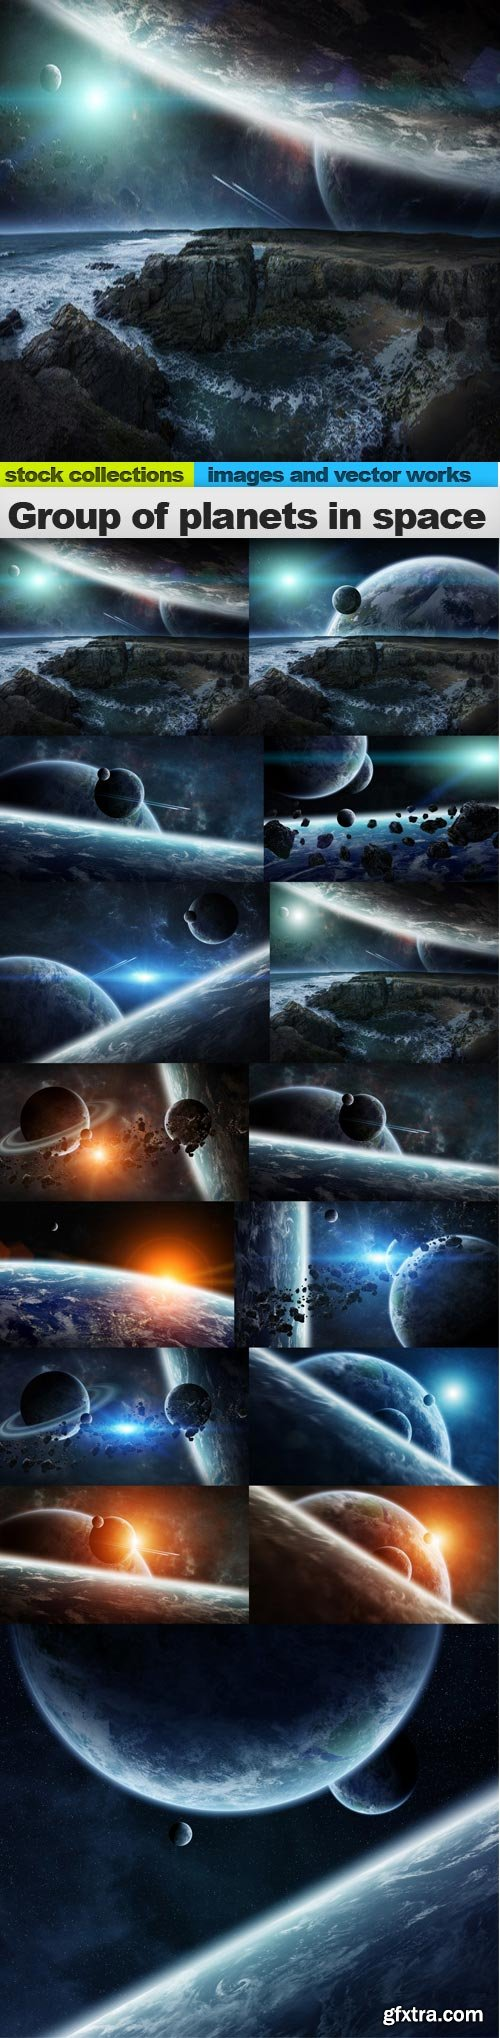 Group of planets in space, 15 x UHQ JPEG